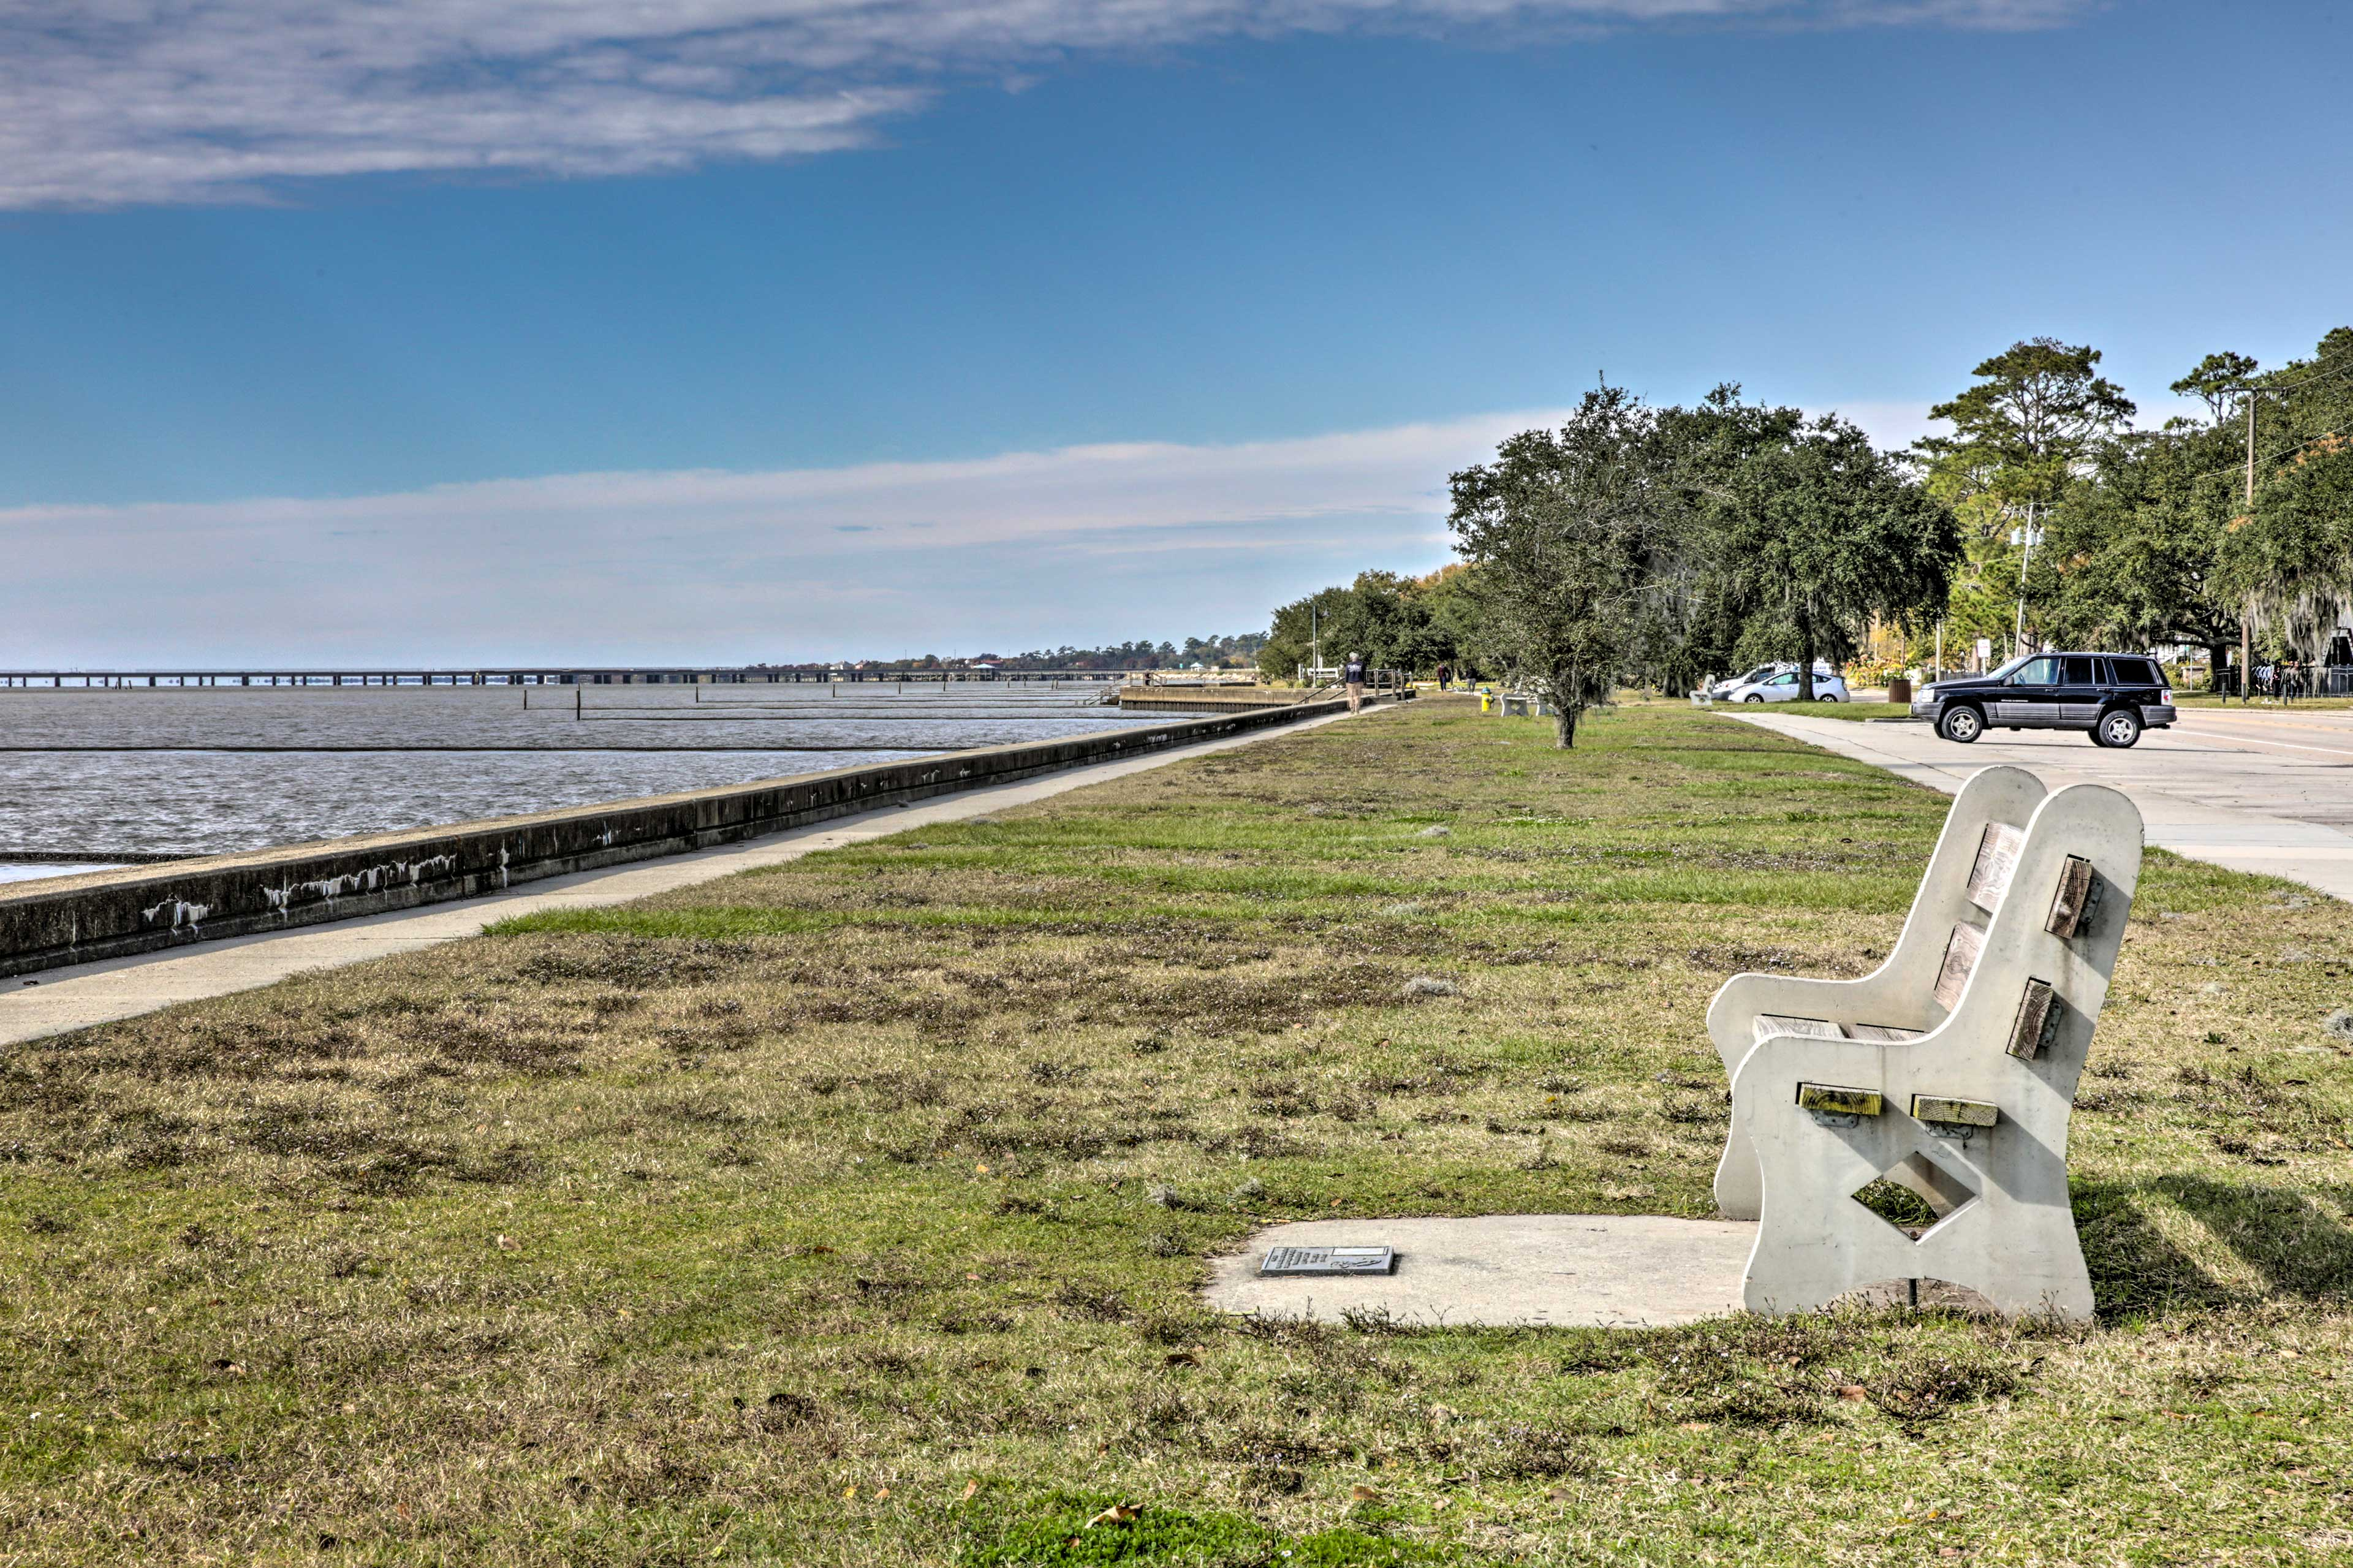 A 10-minute walk will have you soaking up the sun from this lakeside bench.